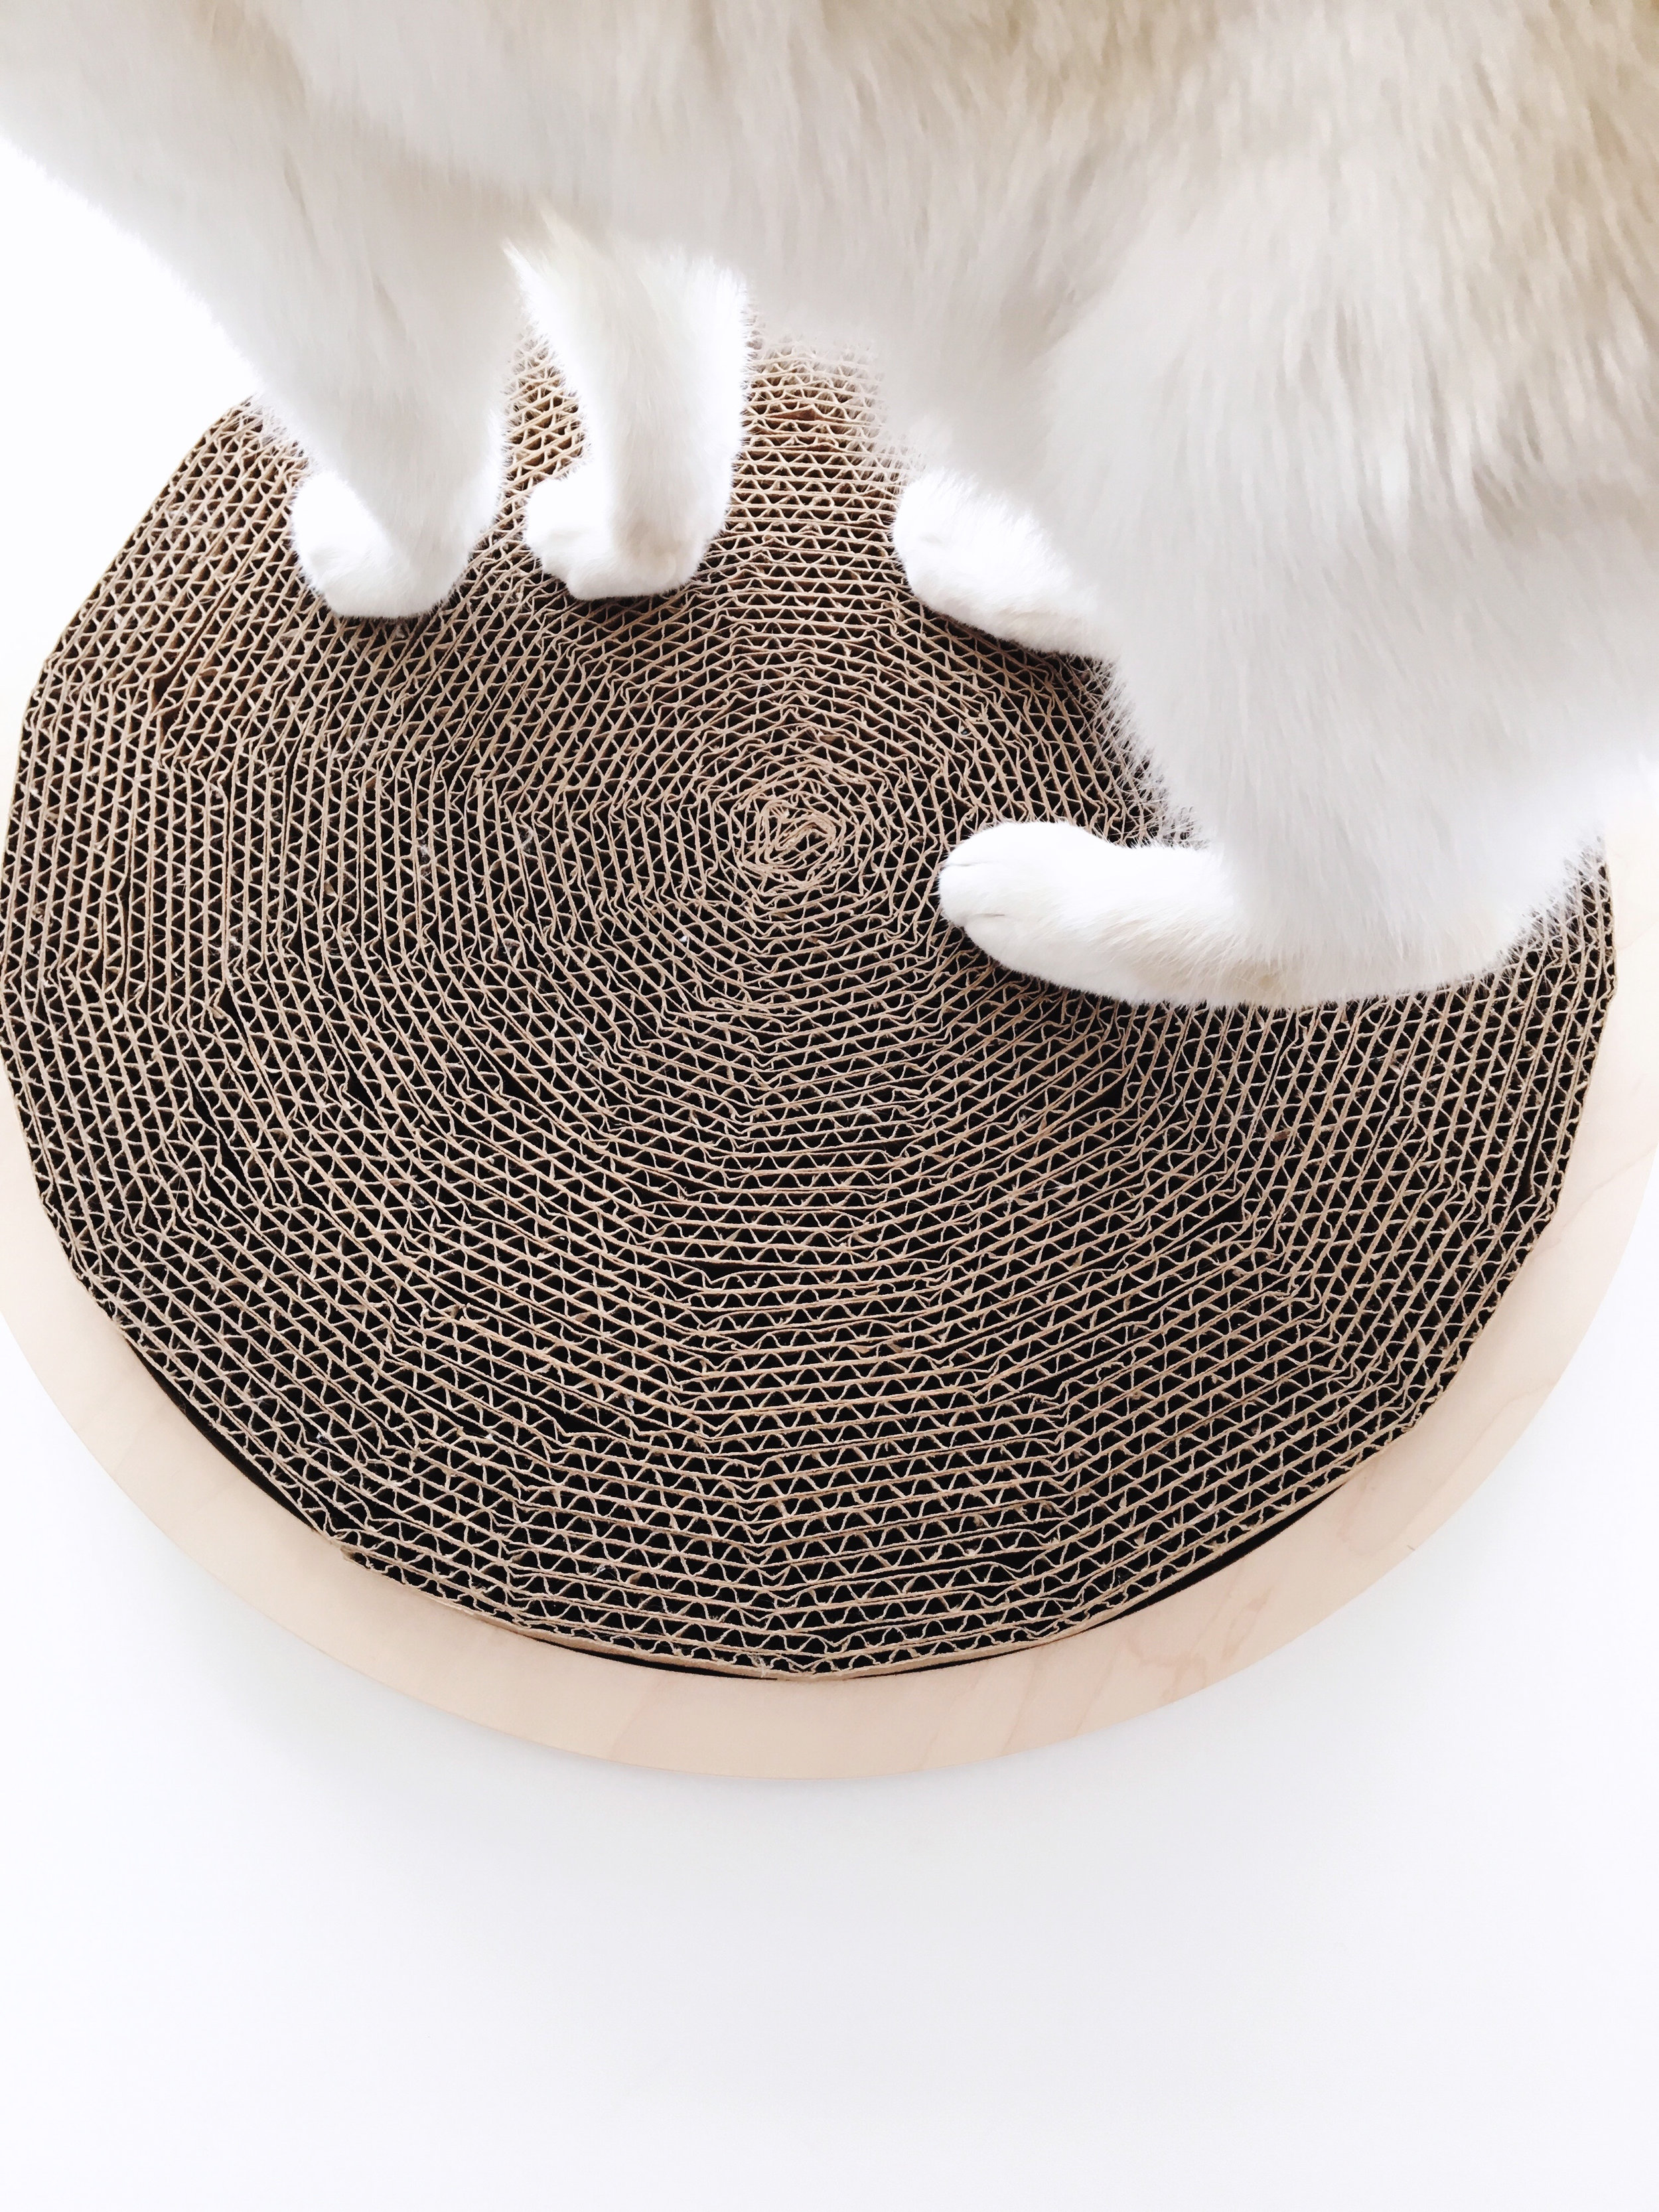 Recycled cardboard scratching mat in a handmade wooden frame